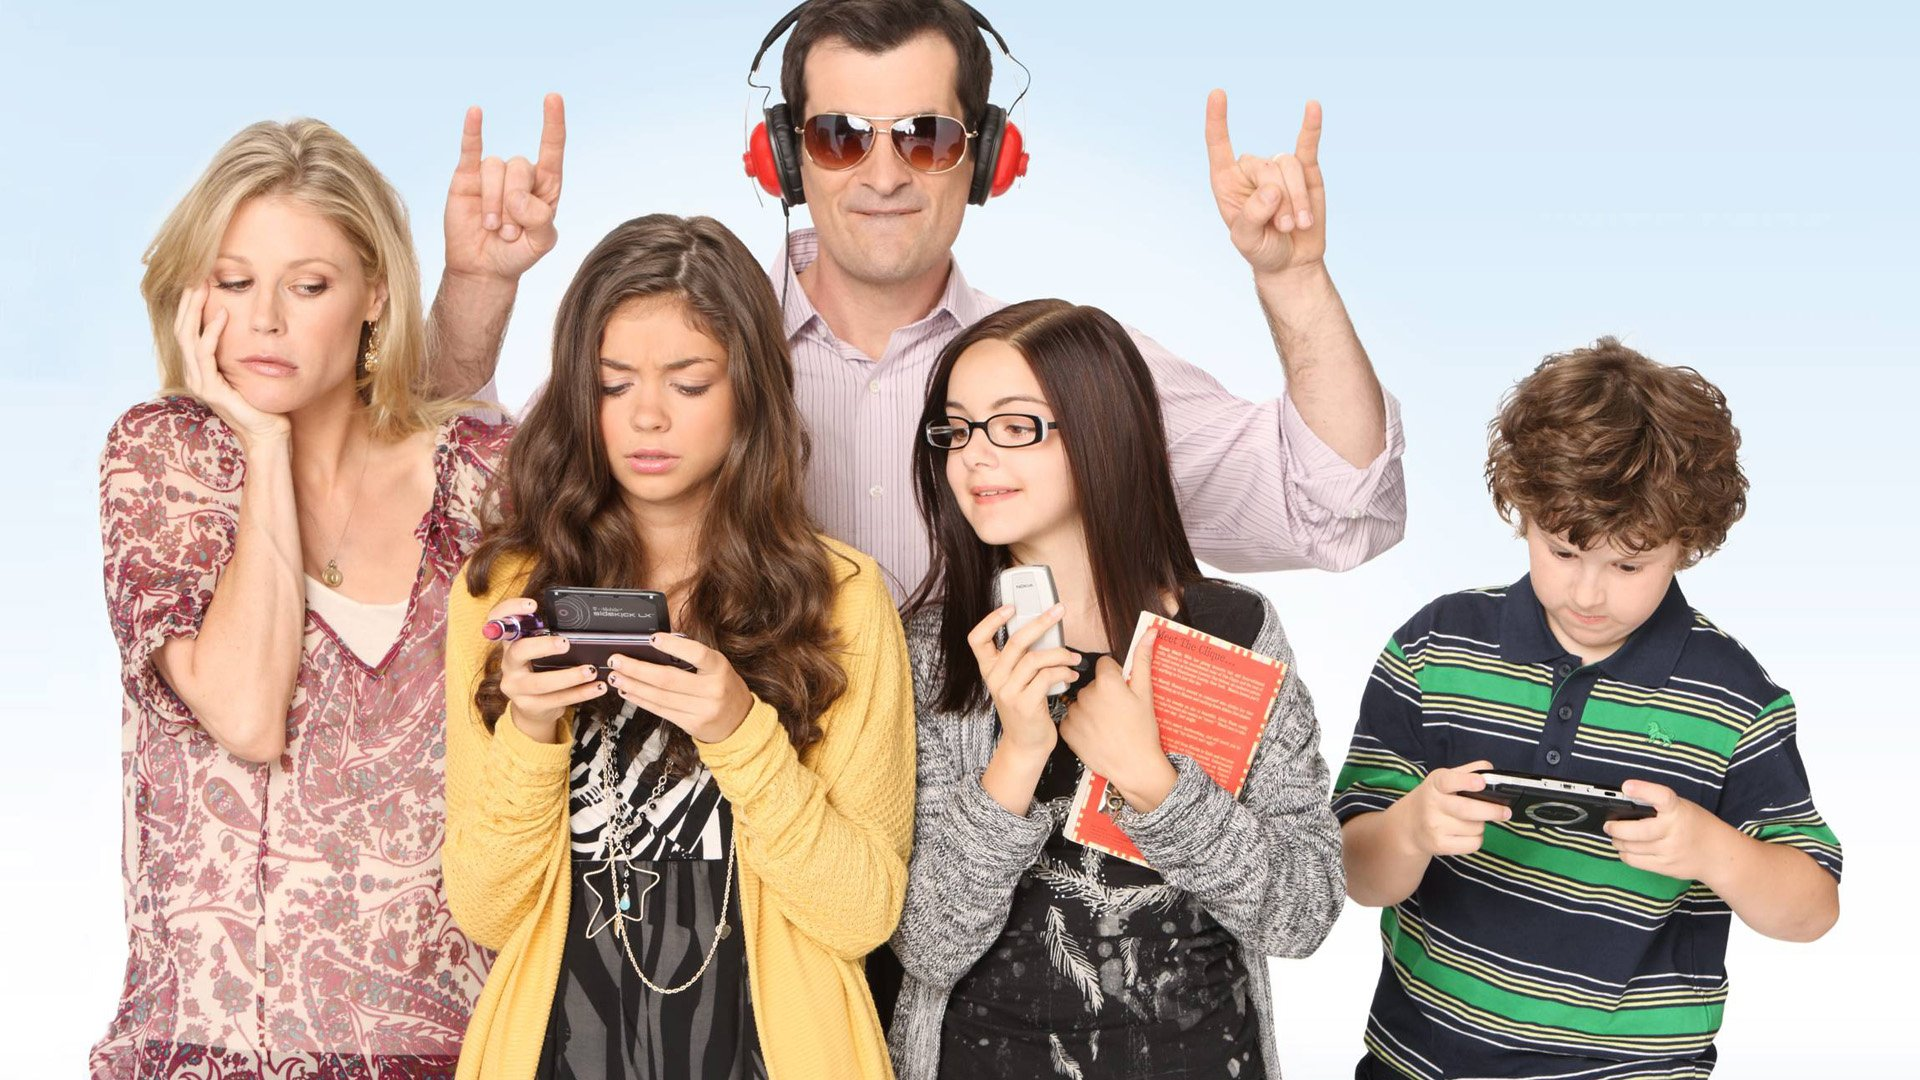 modern family wallpaper photo - photo #26